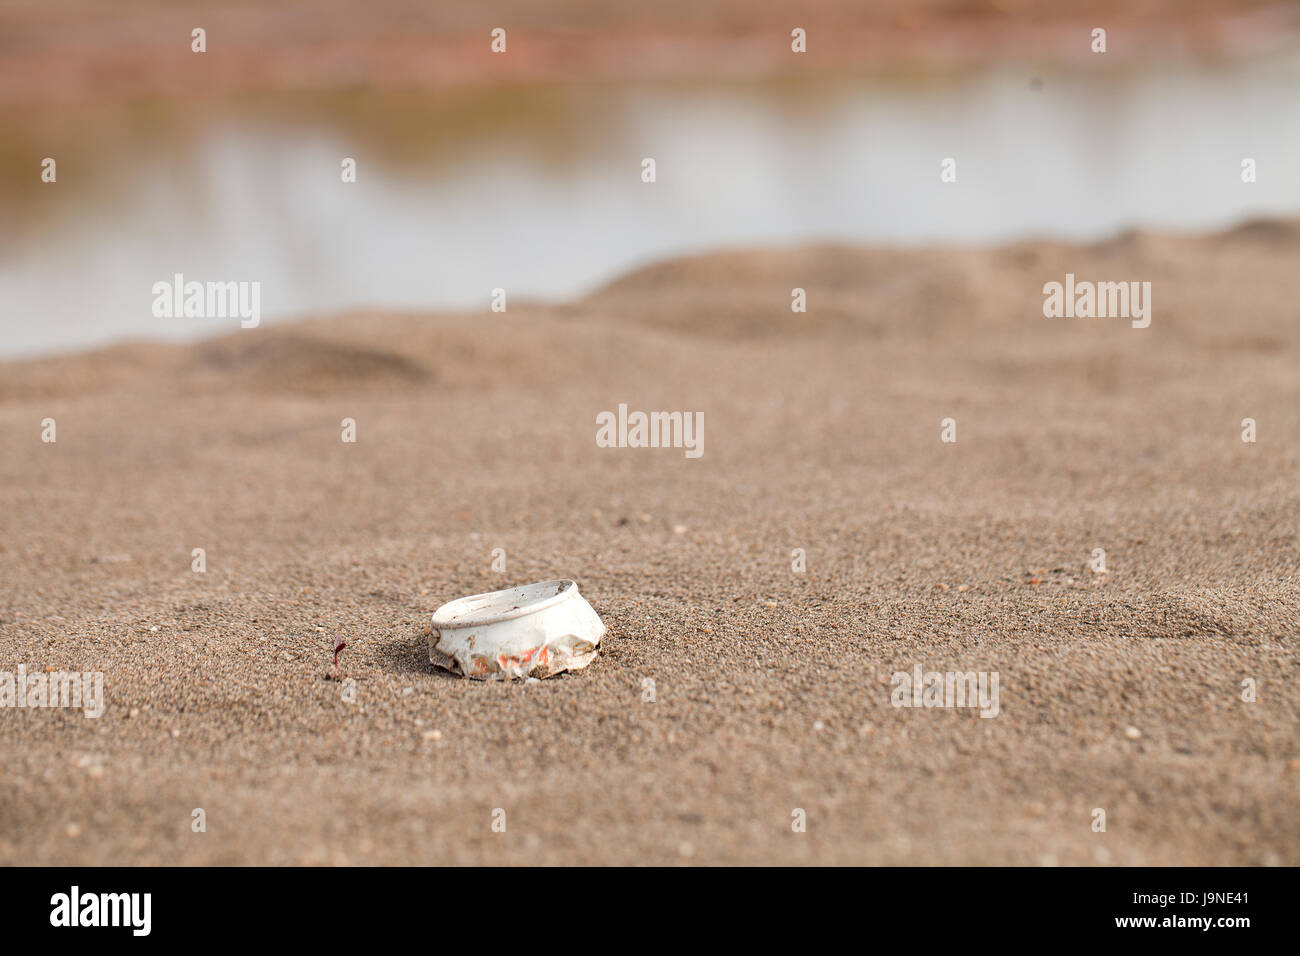 Top of a beer can littering on the beach. - Stock Image